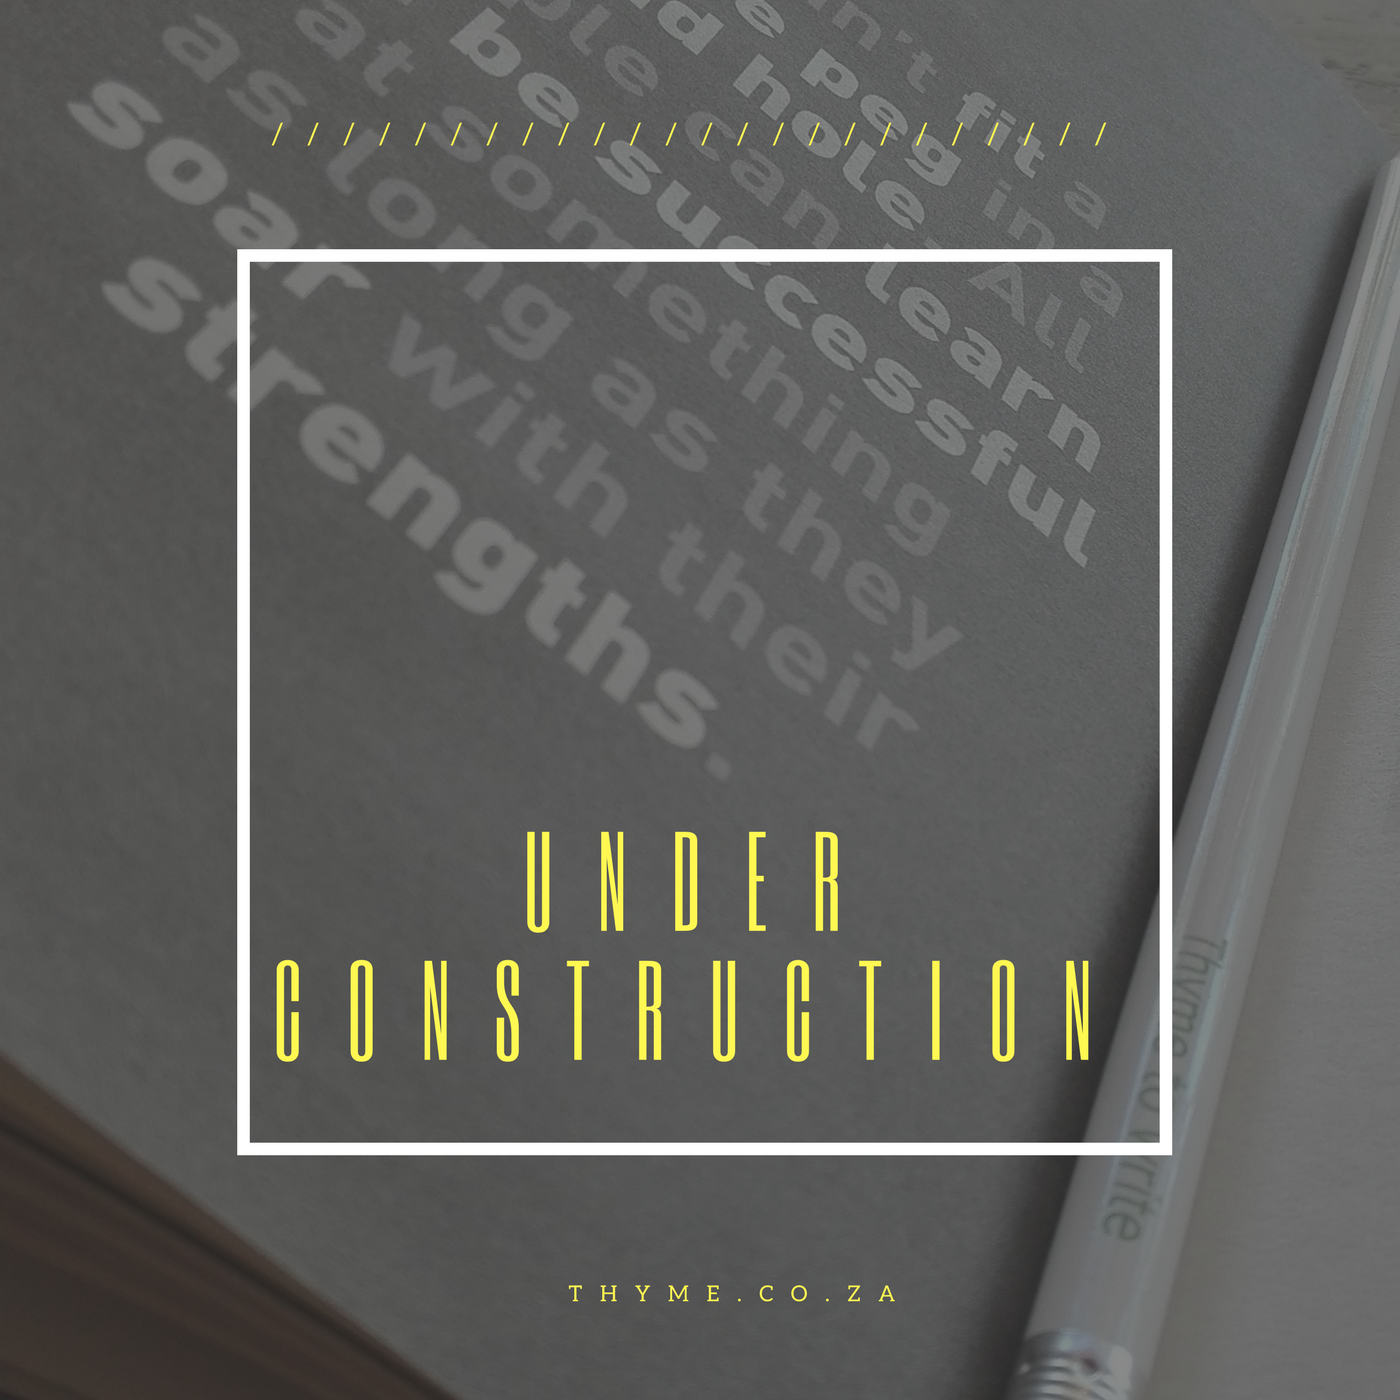 Under construction blog